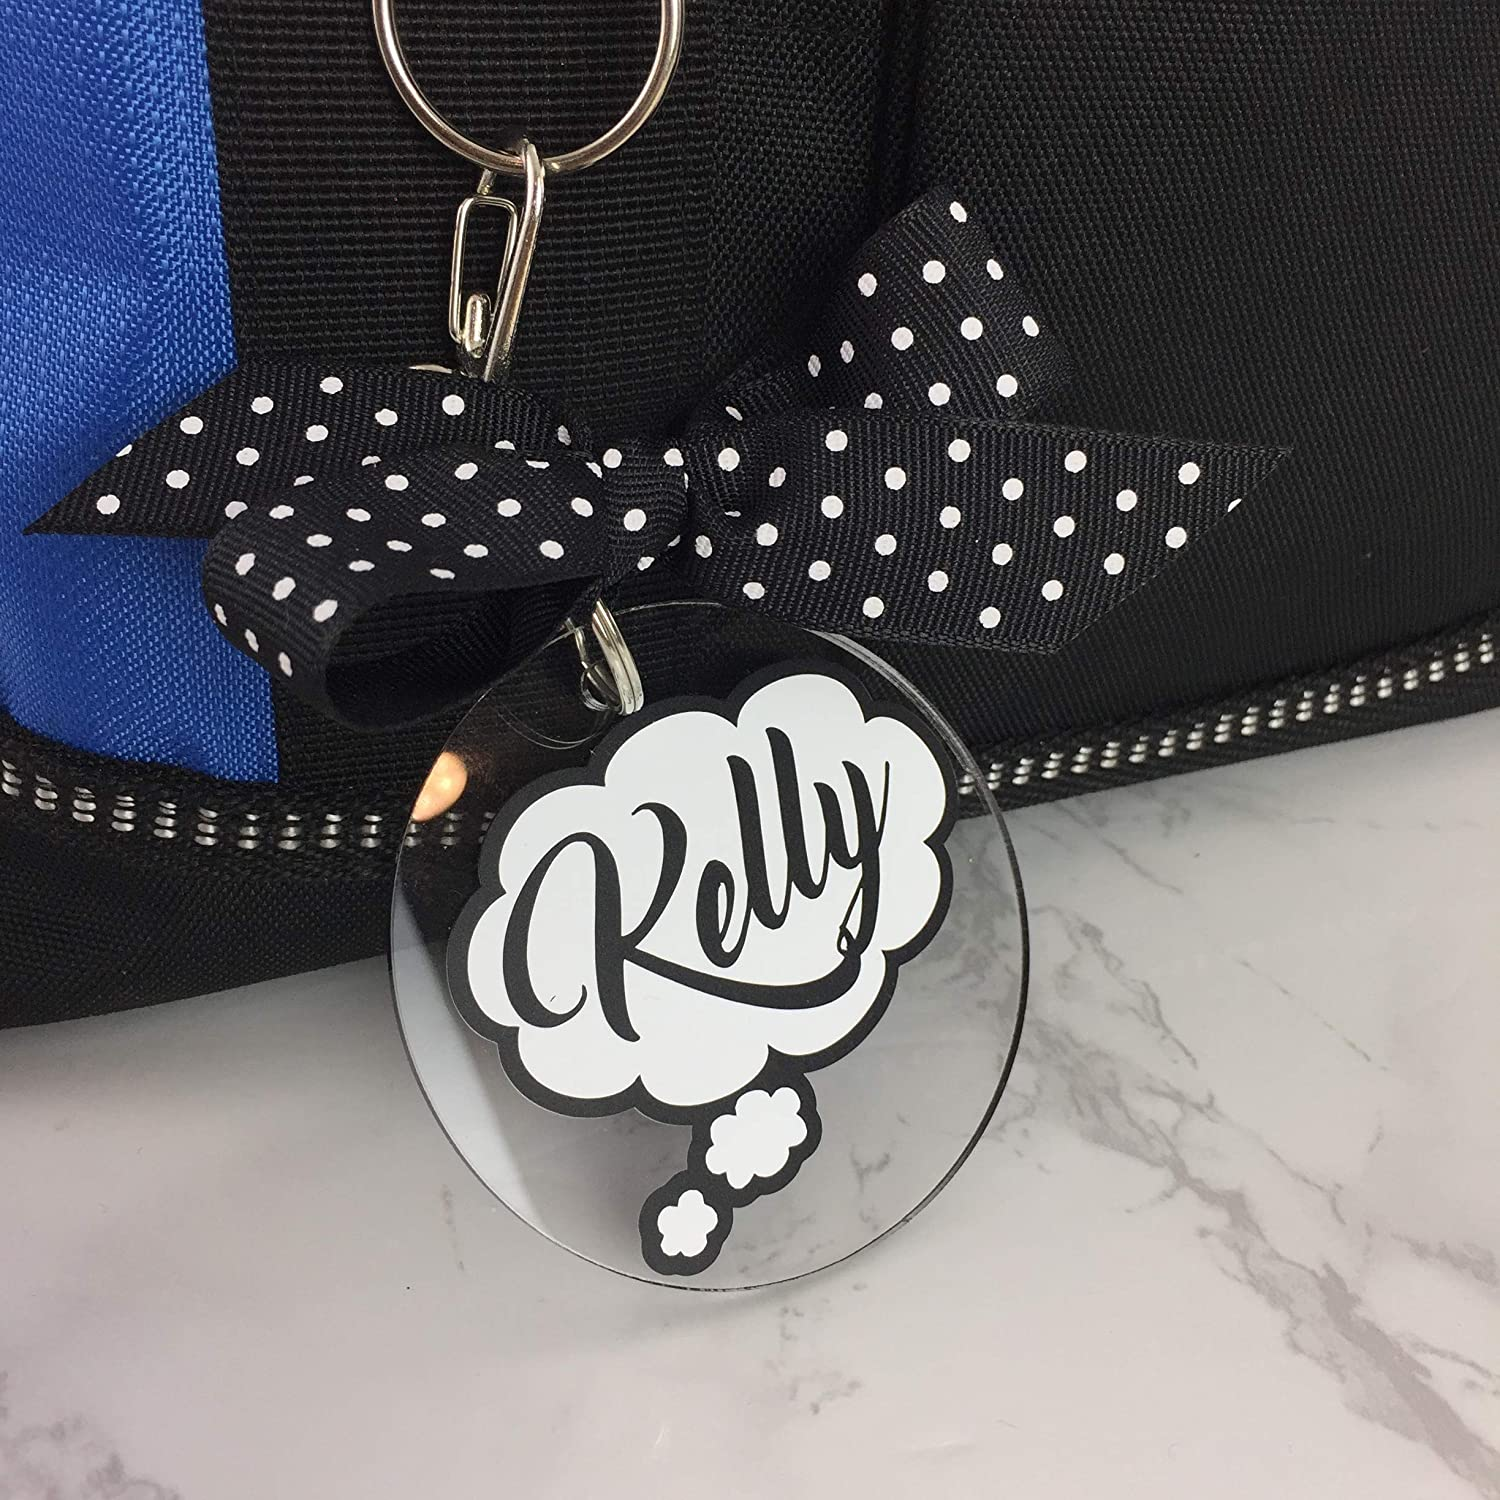 Thought Bubble Bag Tag Personalized with Your Name and Your Colors